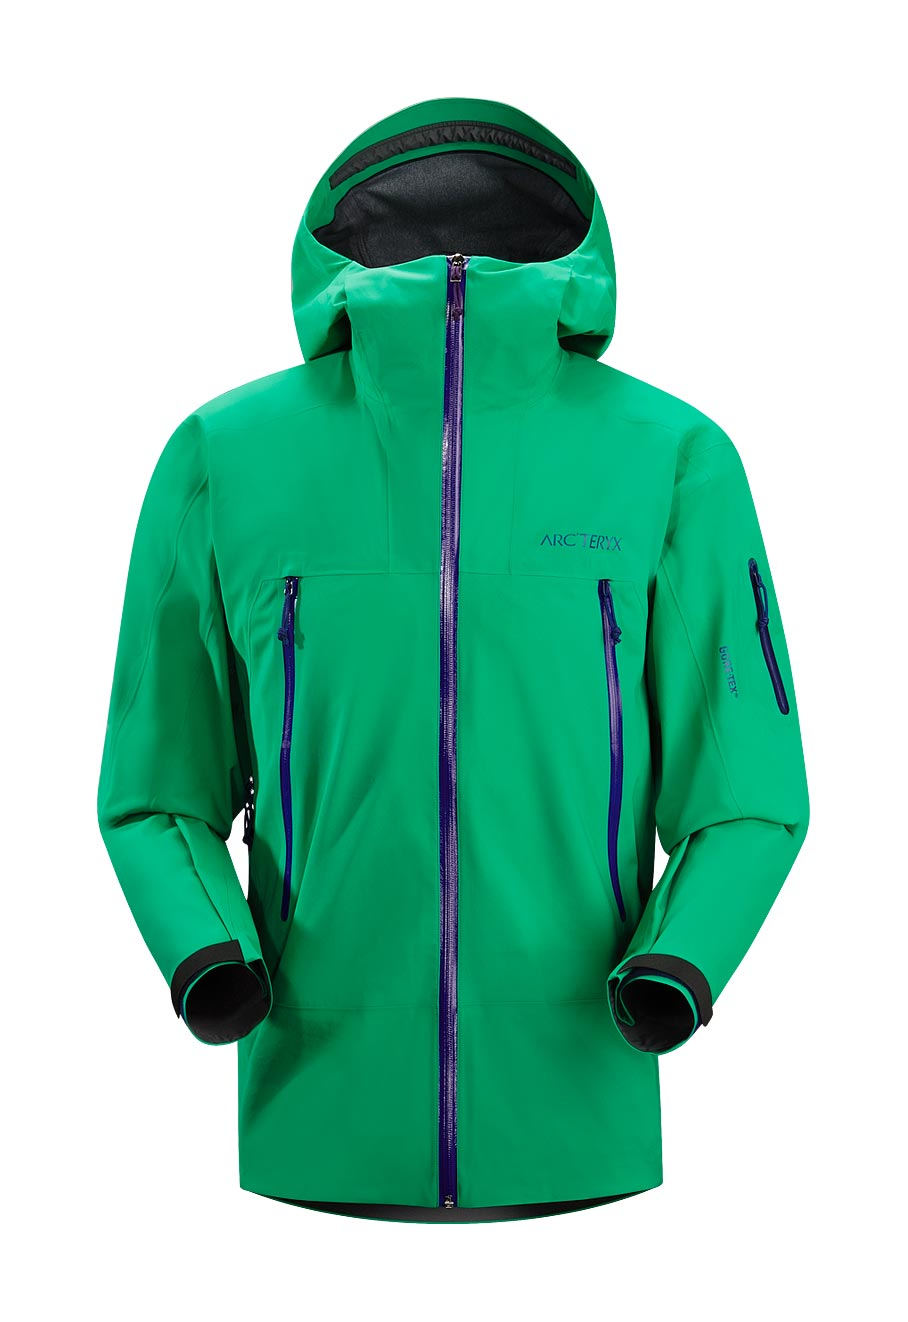 Arcteryx Green Light Sabre SV Jacket